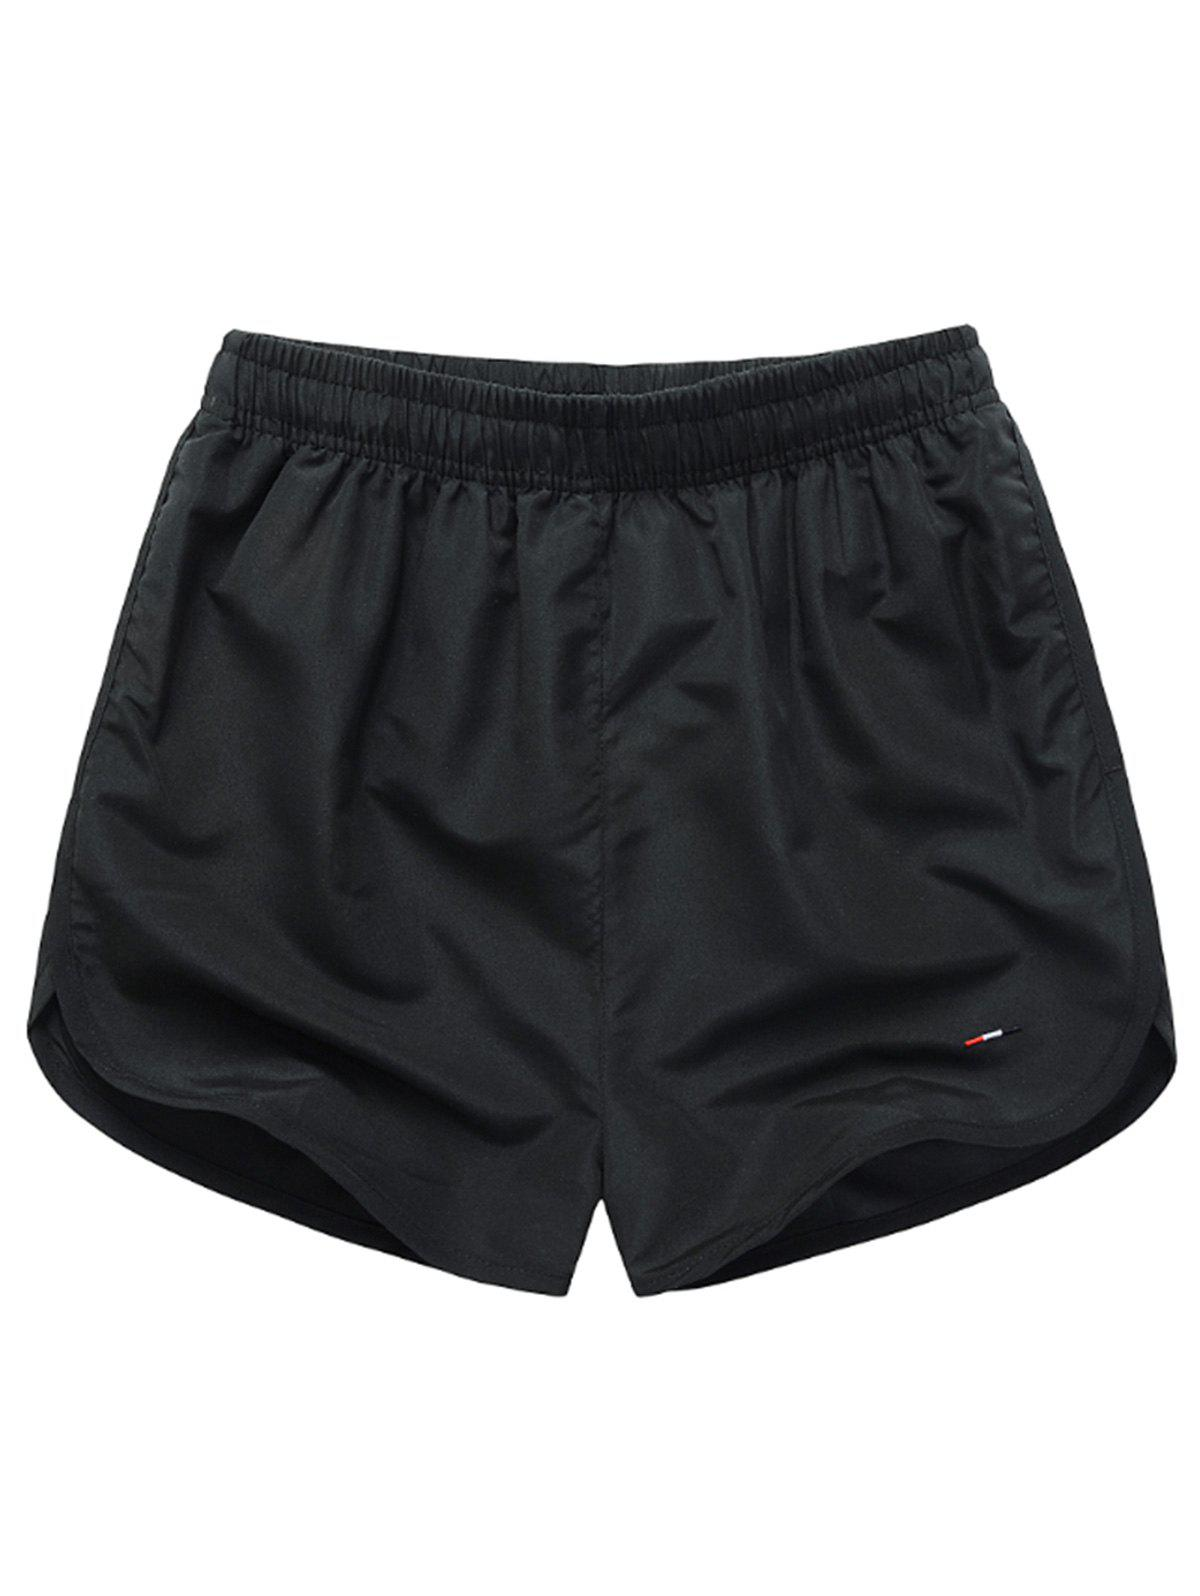 Mesh Lined Dolphin Hem Beach Shorts - BLACK XL